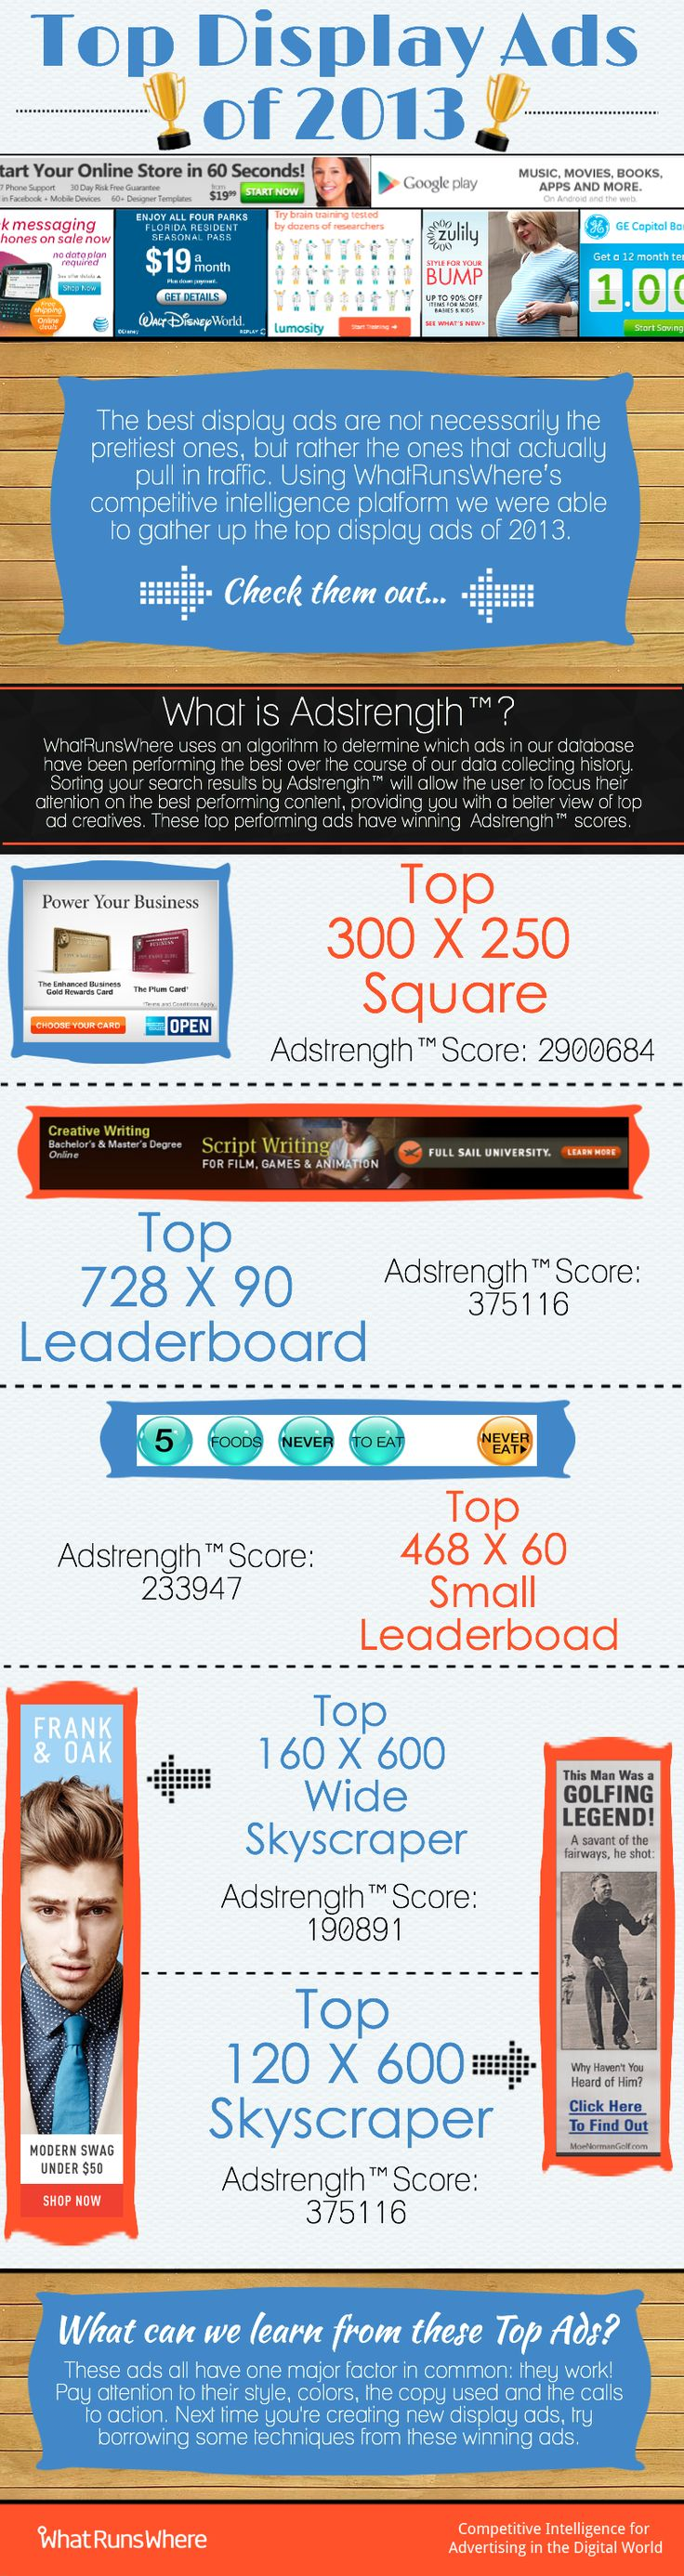 Top Display Ads Infographic